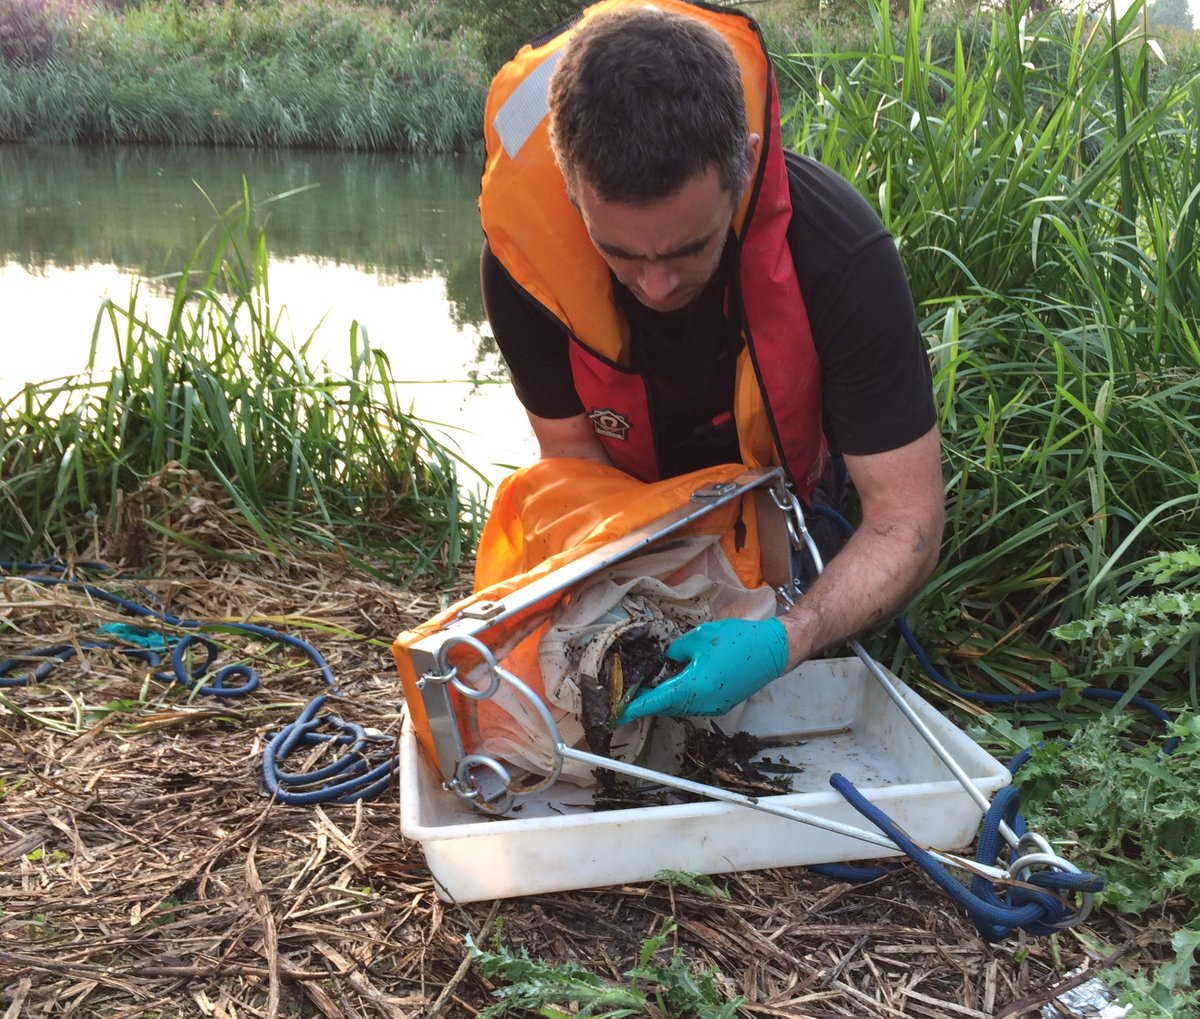 Our Environmental Impact Assessment #EIA helps us maximise benefits to wildlife &amp; design #OxfordFloodScheme to minimise impacts #FridayFact. We&#39;ve surveyed #watervole #otter #badger #bats #birds #reptiles #trees #plants #river #habitat  Find out more here:  https://www. facebook.com/oxfordscheme/p osts/1270434393058753 &nbsp; … <br>http://pic.twitter.com/KHmA1ZLojC